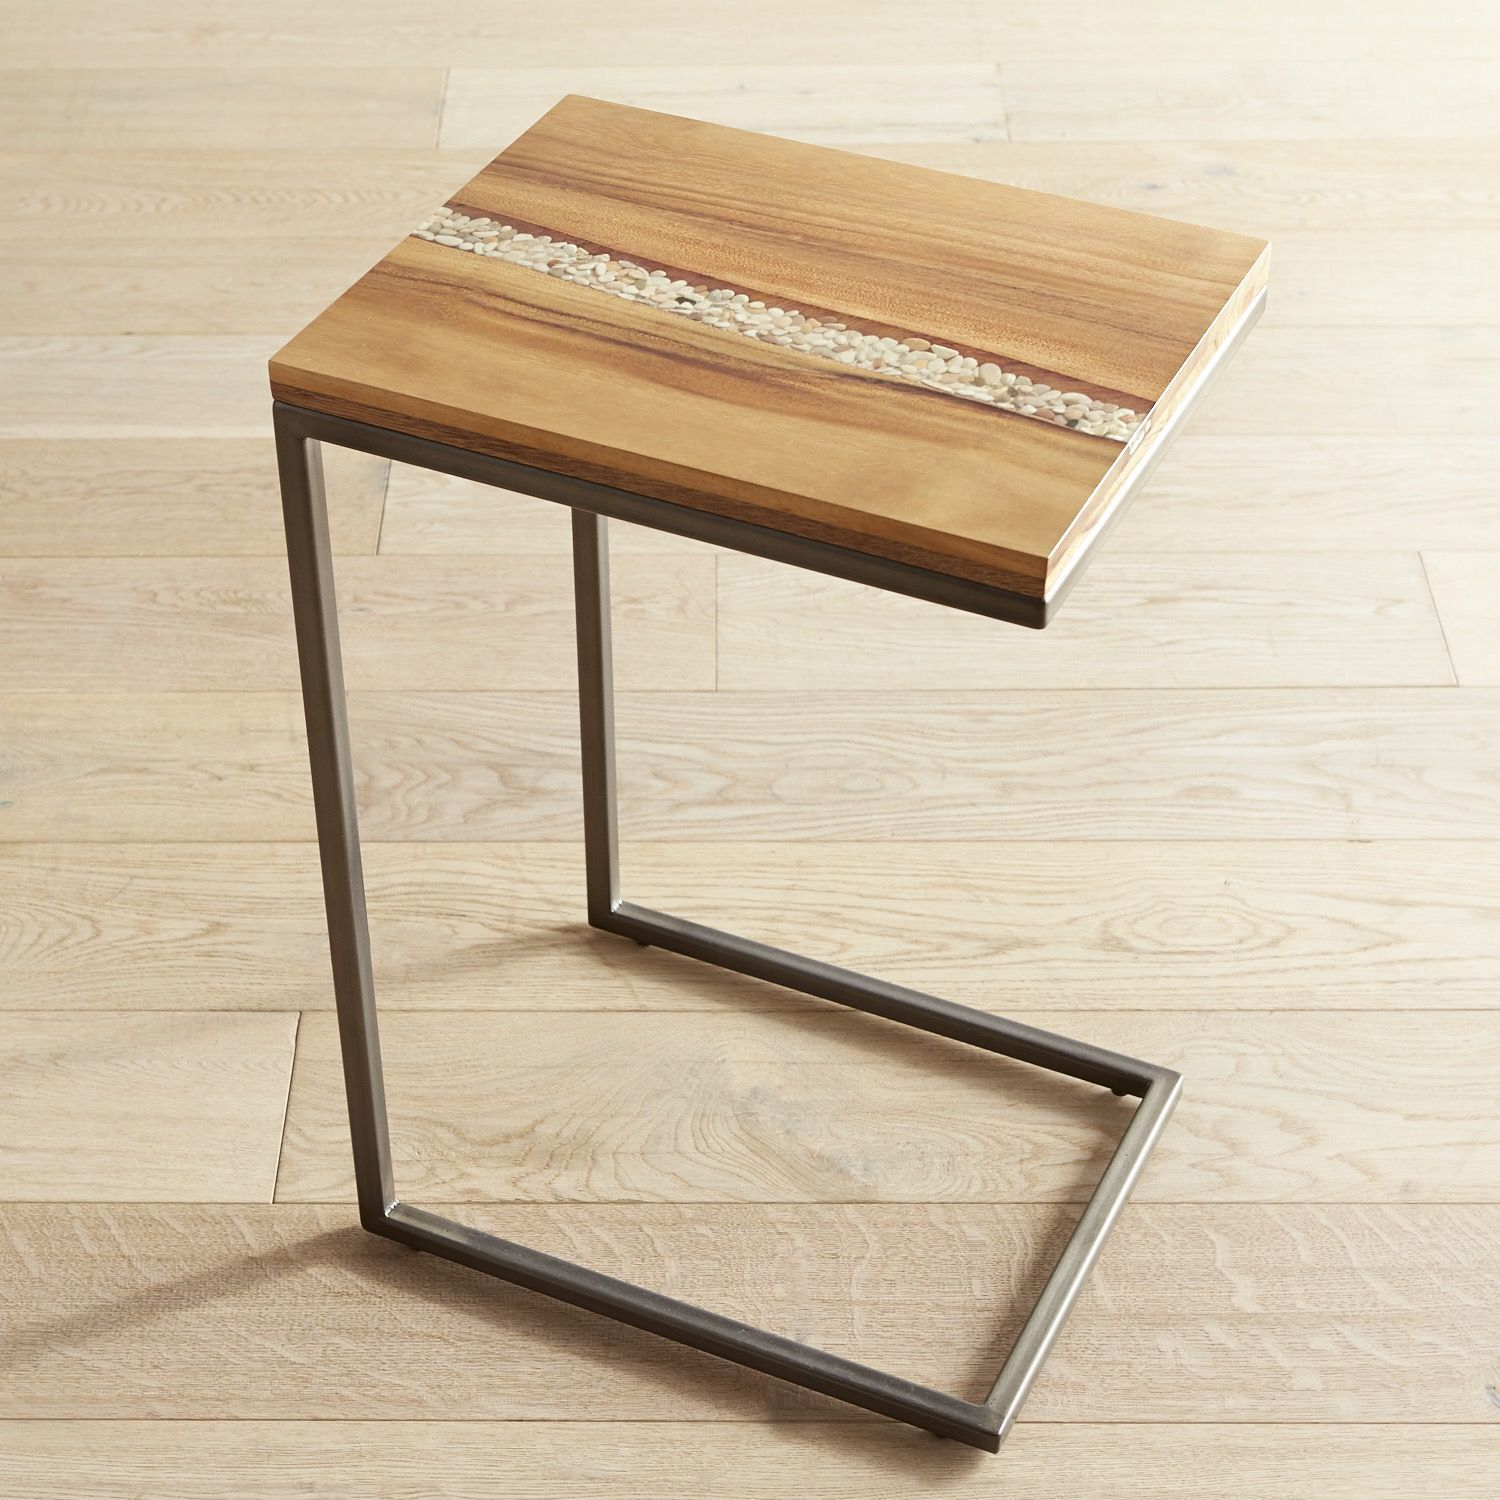 River Rock C Table C Table Table Metal Furniture